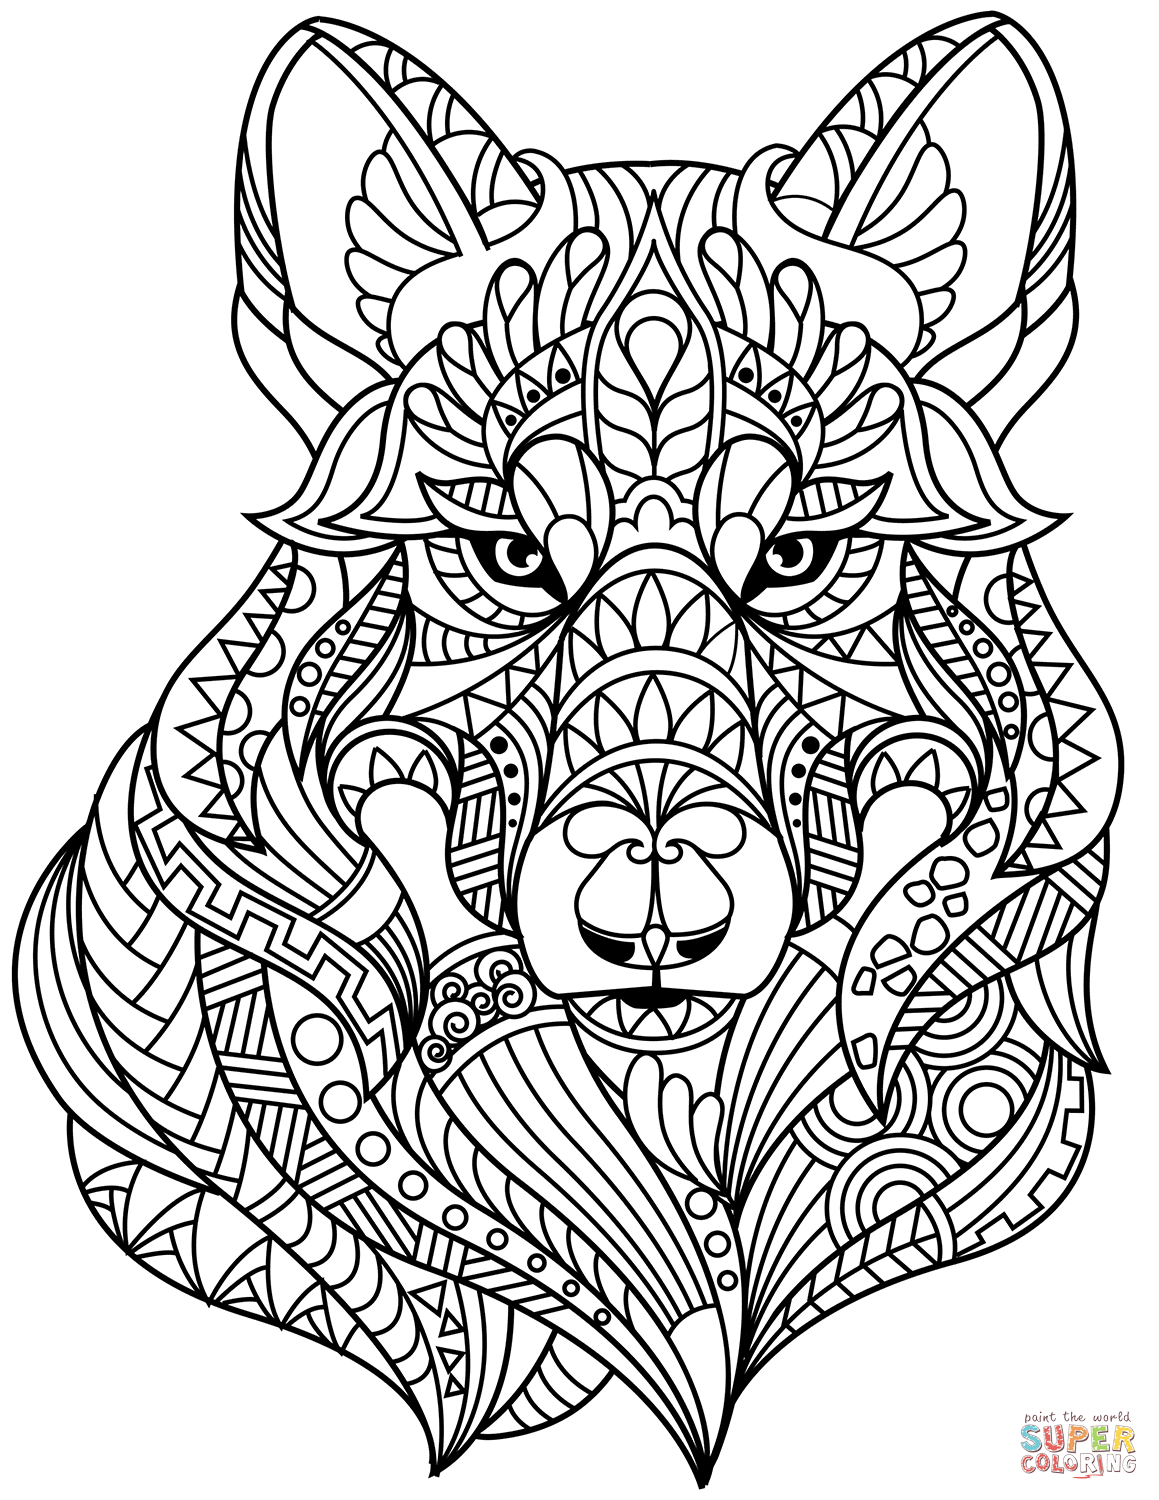 zentangle coloring pages free printable zentangle to print for free zentangle kids coloring pages coloring free zentangle printable pages